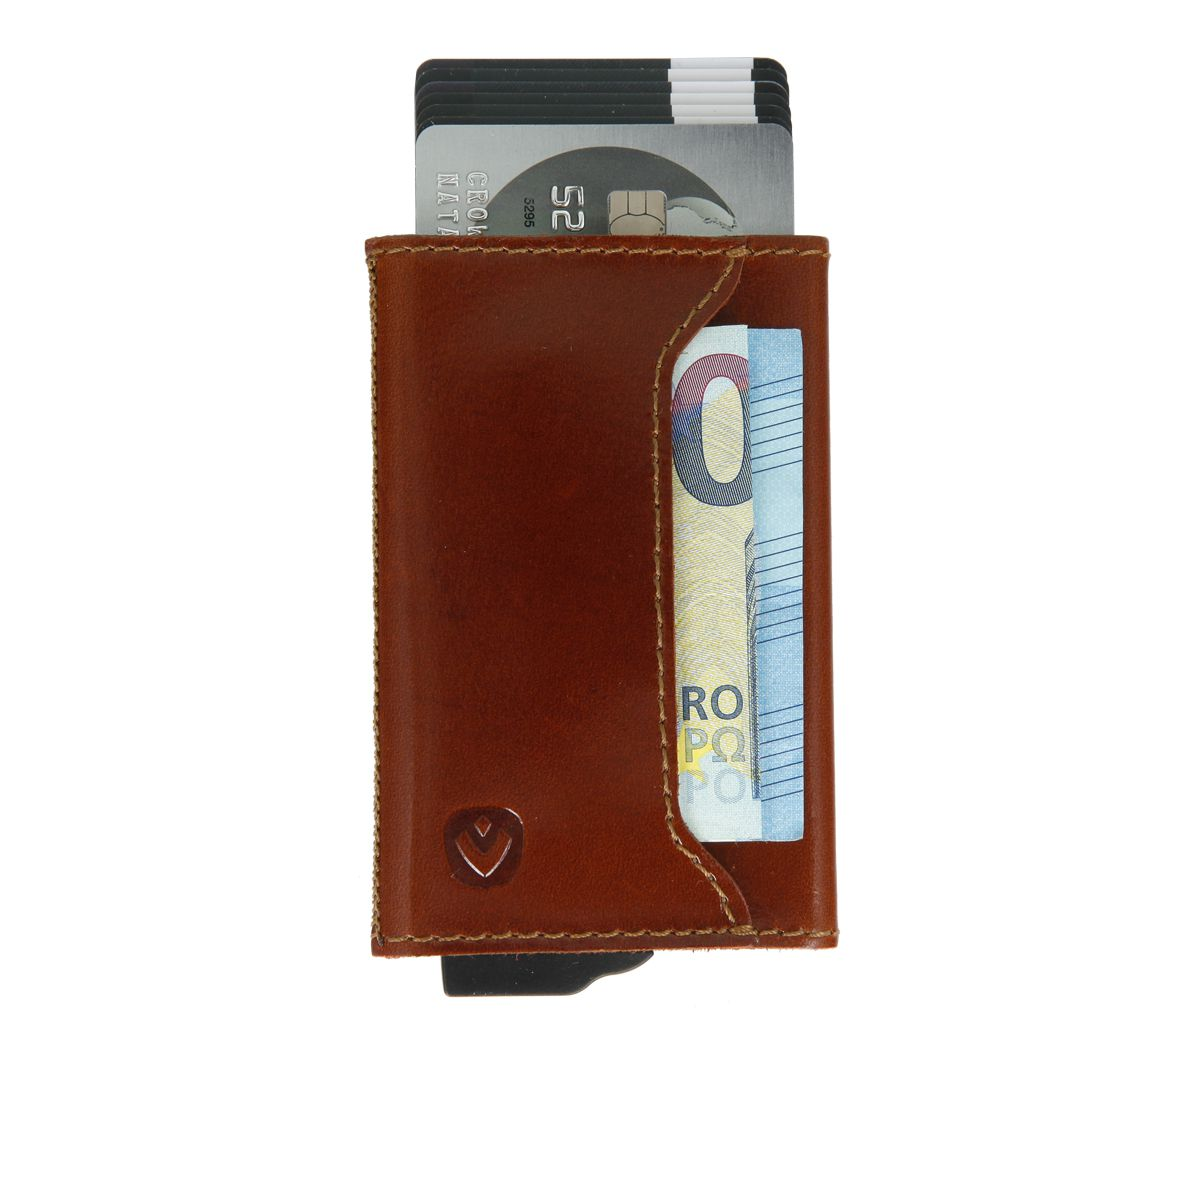 gift set leather with card holder and key organizer cognac brown